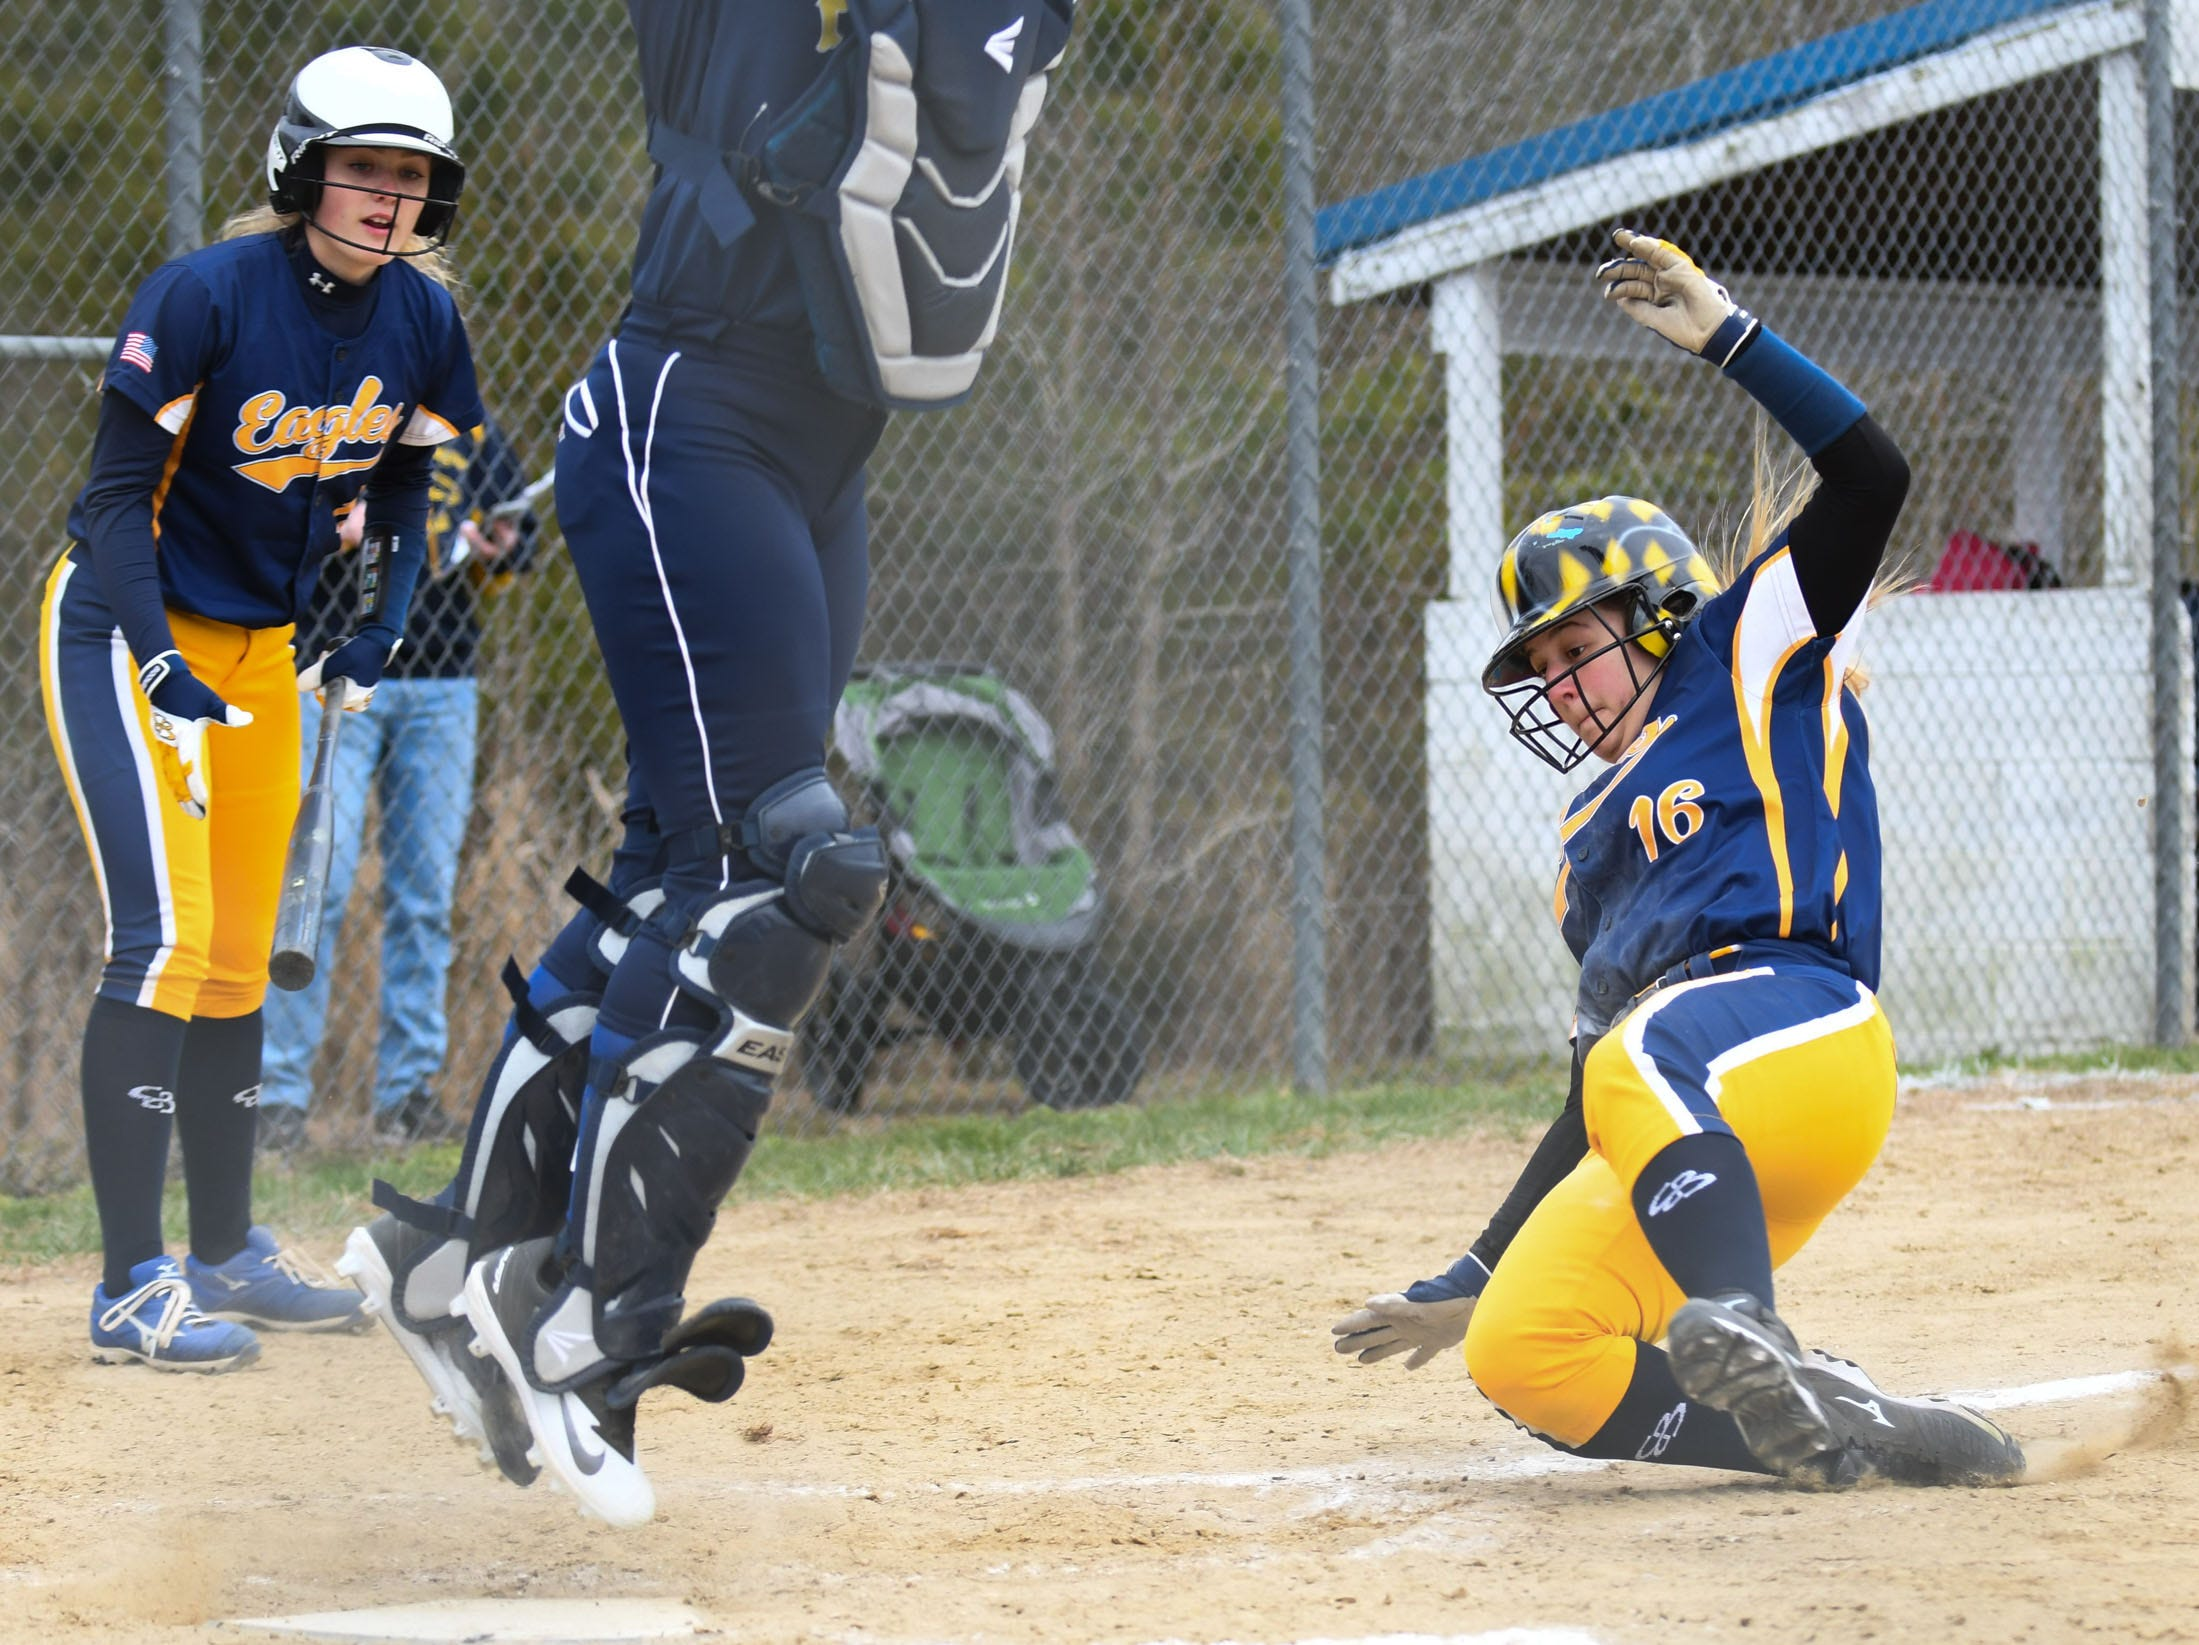 Holly Grove's Kayla Graziano slides into home against Chincoteague on Wednesday, March 20, 2019 in Westover, Md.